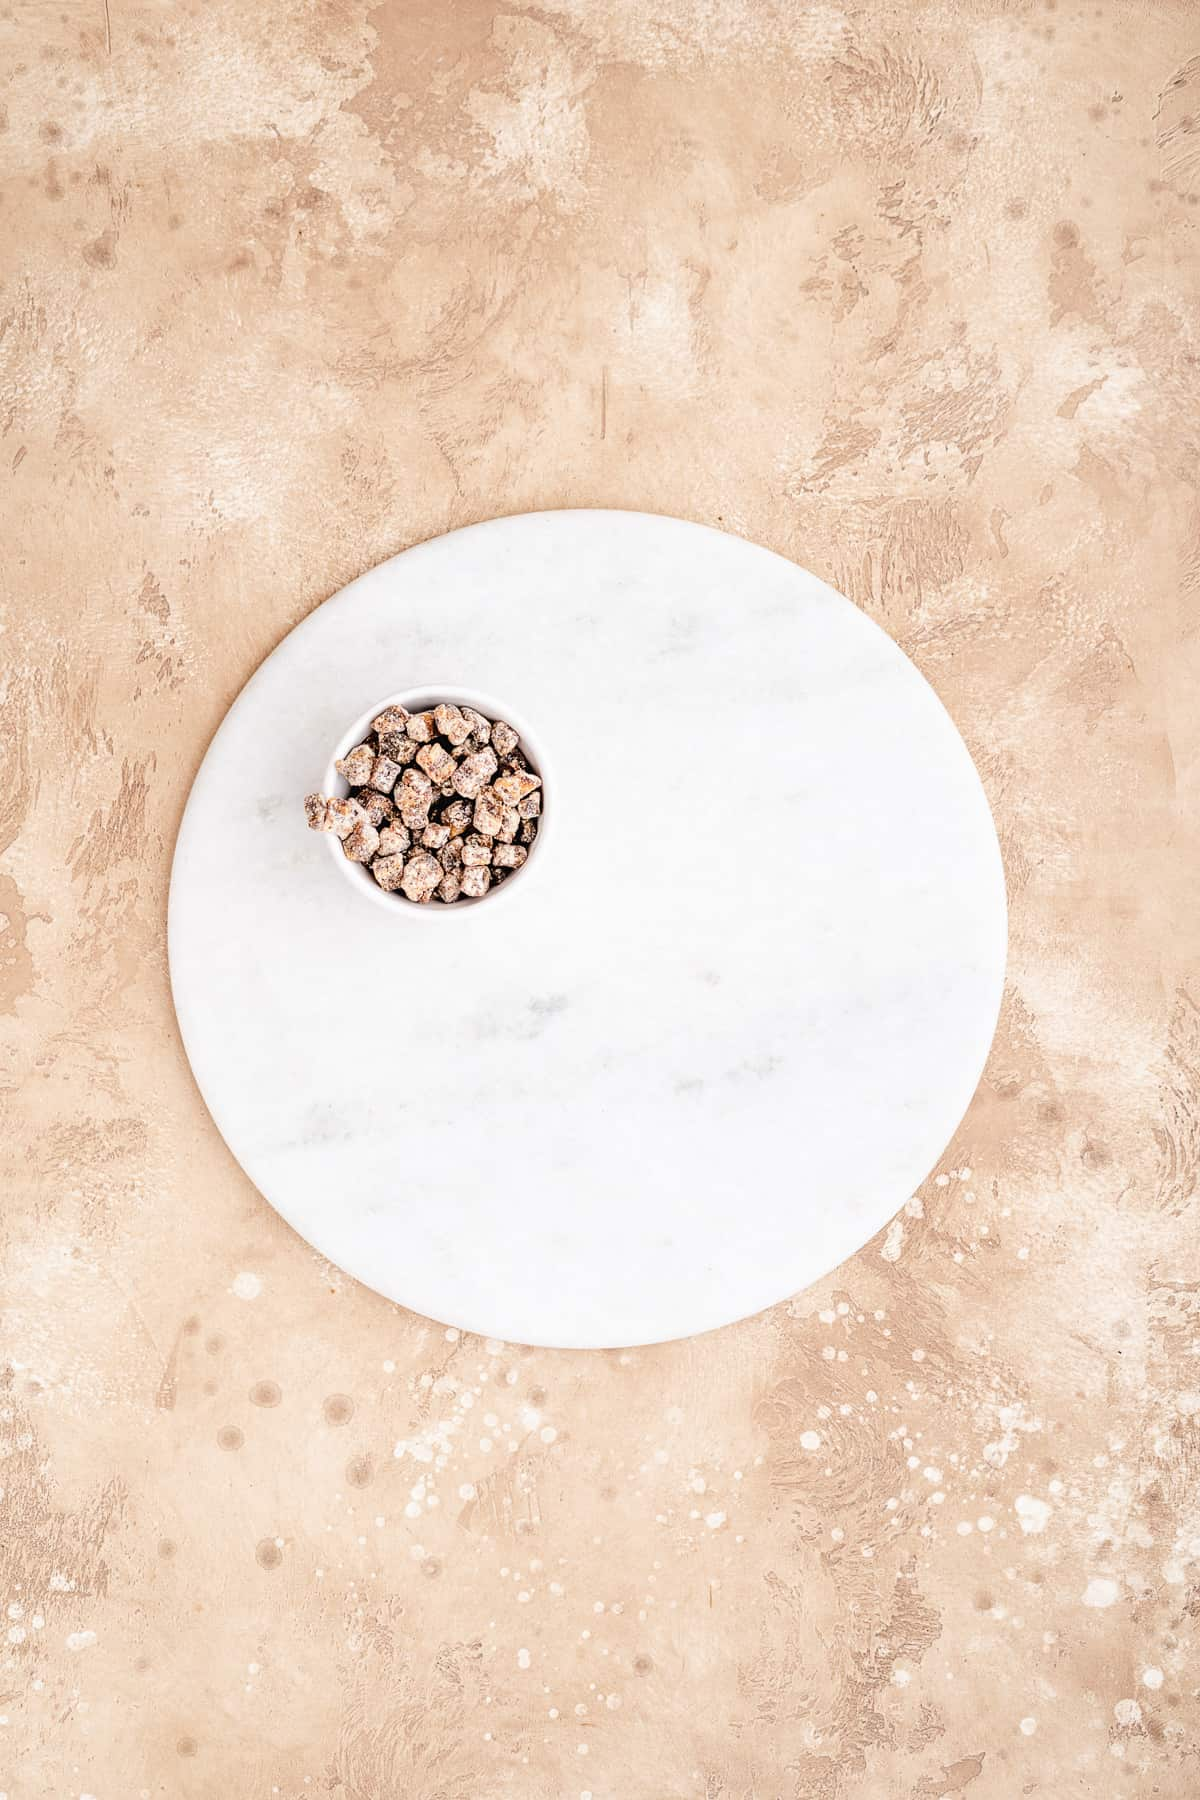 Overhead photo of white marble cake platter with small white bowl of nuts placed on the platter to begin building the charcuterie board.